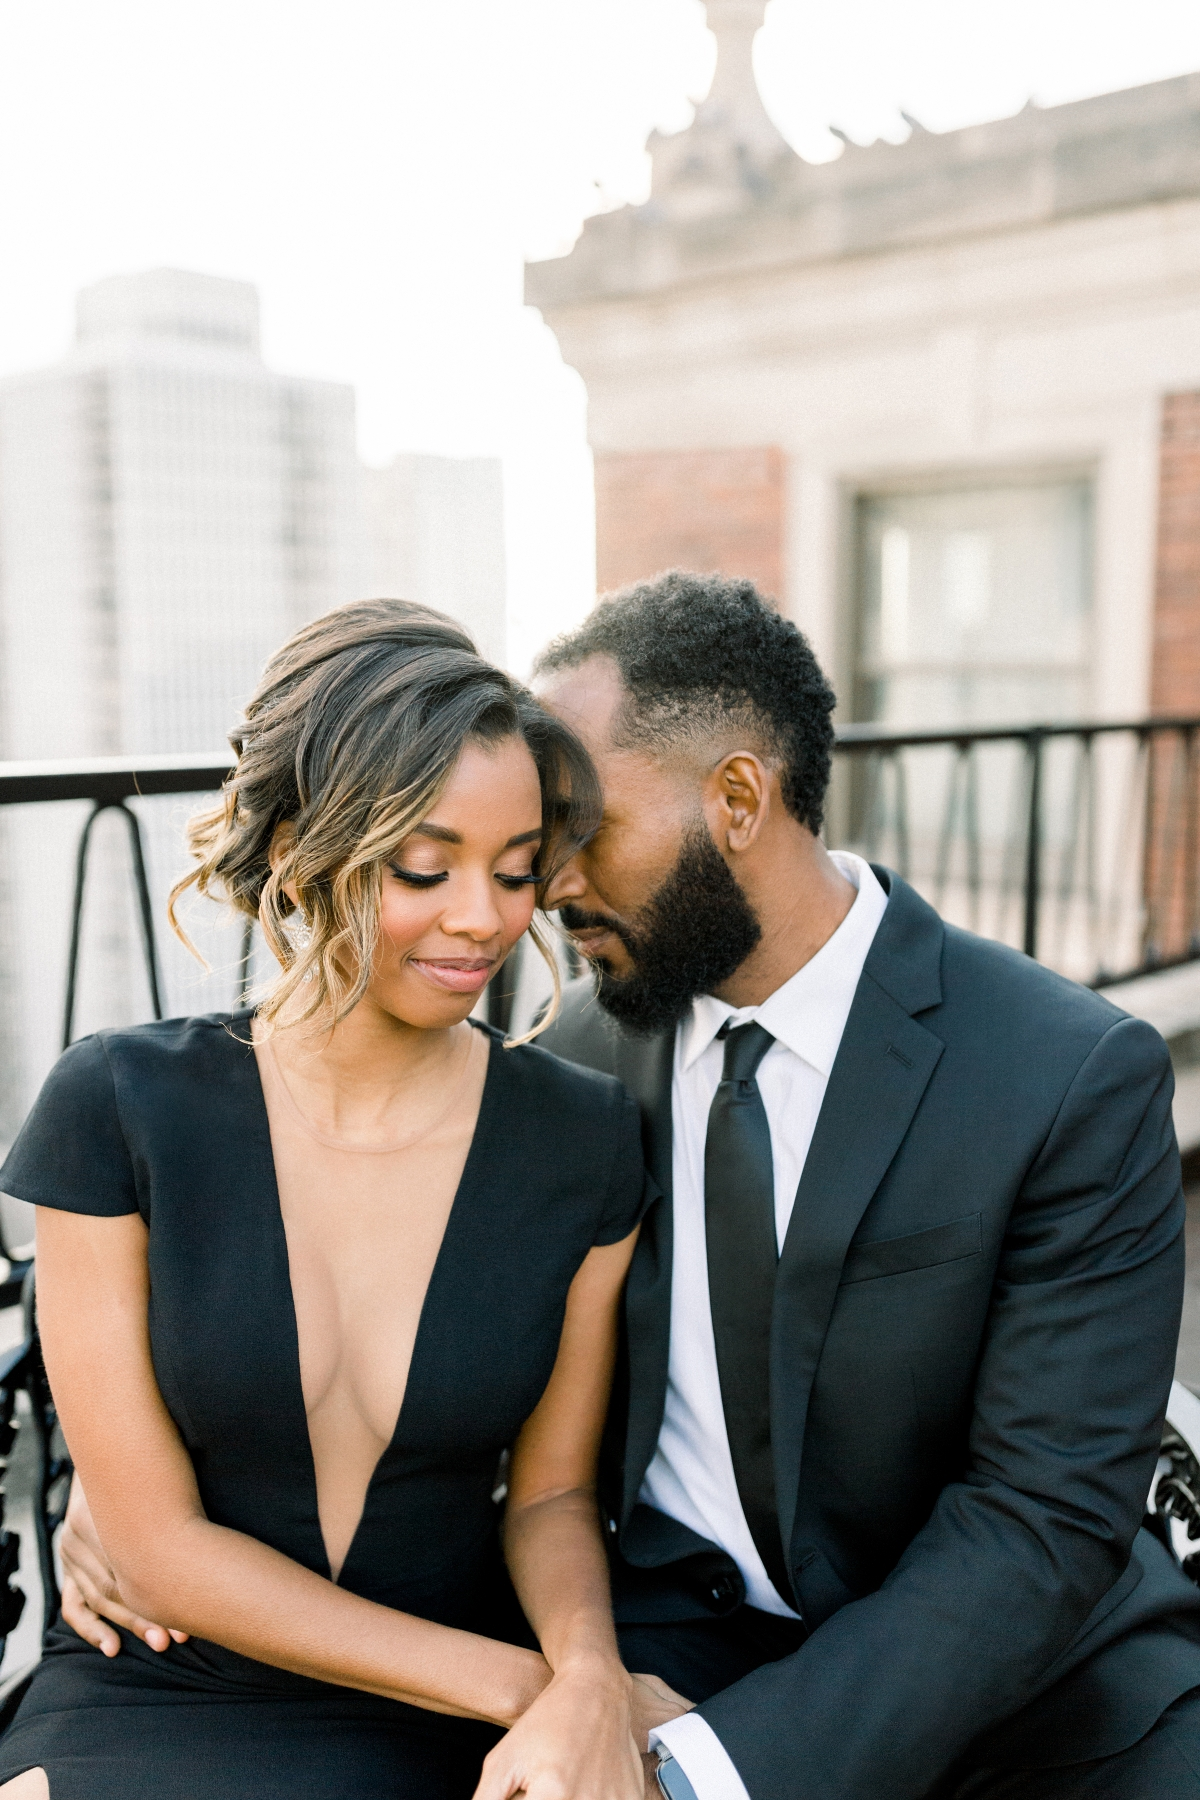 Aisle Society Minted Glam Engagement Session Lisa Hufford 35